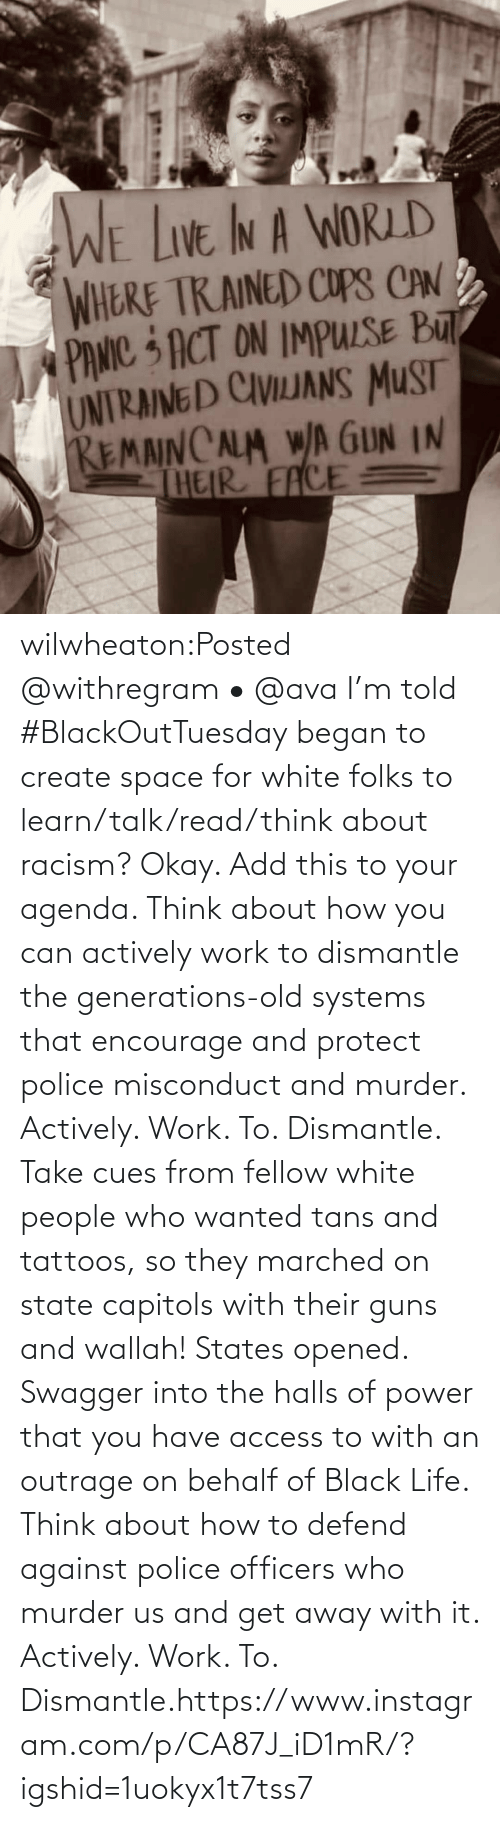 Life: wilwheaton:Posted @withregram • @ava I'm told #BlackOutTuesday began to create space for white folks to learn/talk/read/think about racism? Okay. Add this to your agenda. Think about how you can actively work to dismantle the generations-old systems that encourage and protect police misconduct and murder. Actively. Work. To. Dismantle. Take cues from fellow white people who wanted tans and tattoos, so they marched on state capitols with their guns and wallah! States opened. Swagger into the halls of power that you have access to with an outrage on behalf of Black Life. Think about how to defend against police officers who murder us and get away with it. Actively. Work. To. Dismantle.https://www.instagram.com/p/CA87J_iD1mR/?igshid=1uokyx1t7tss7